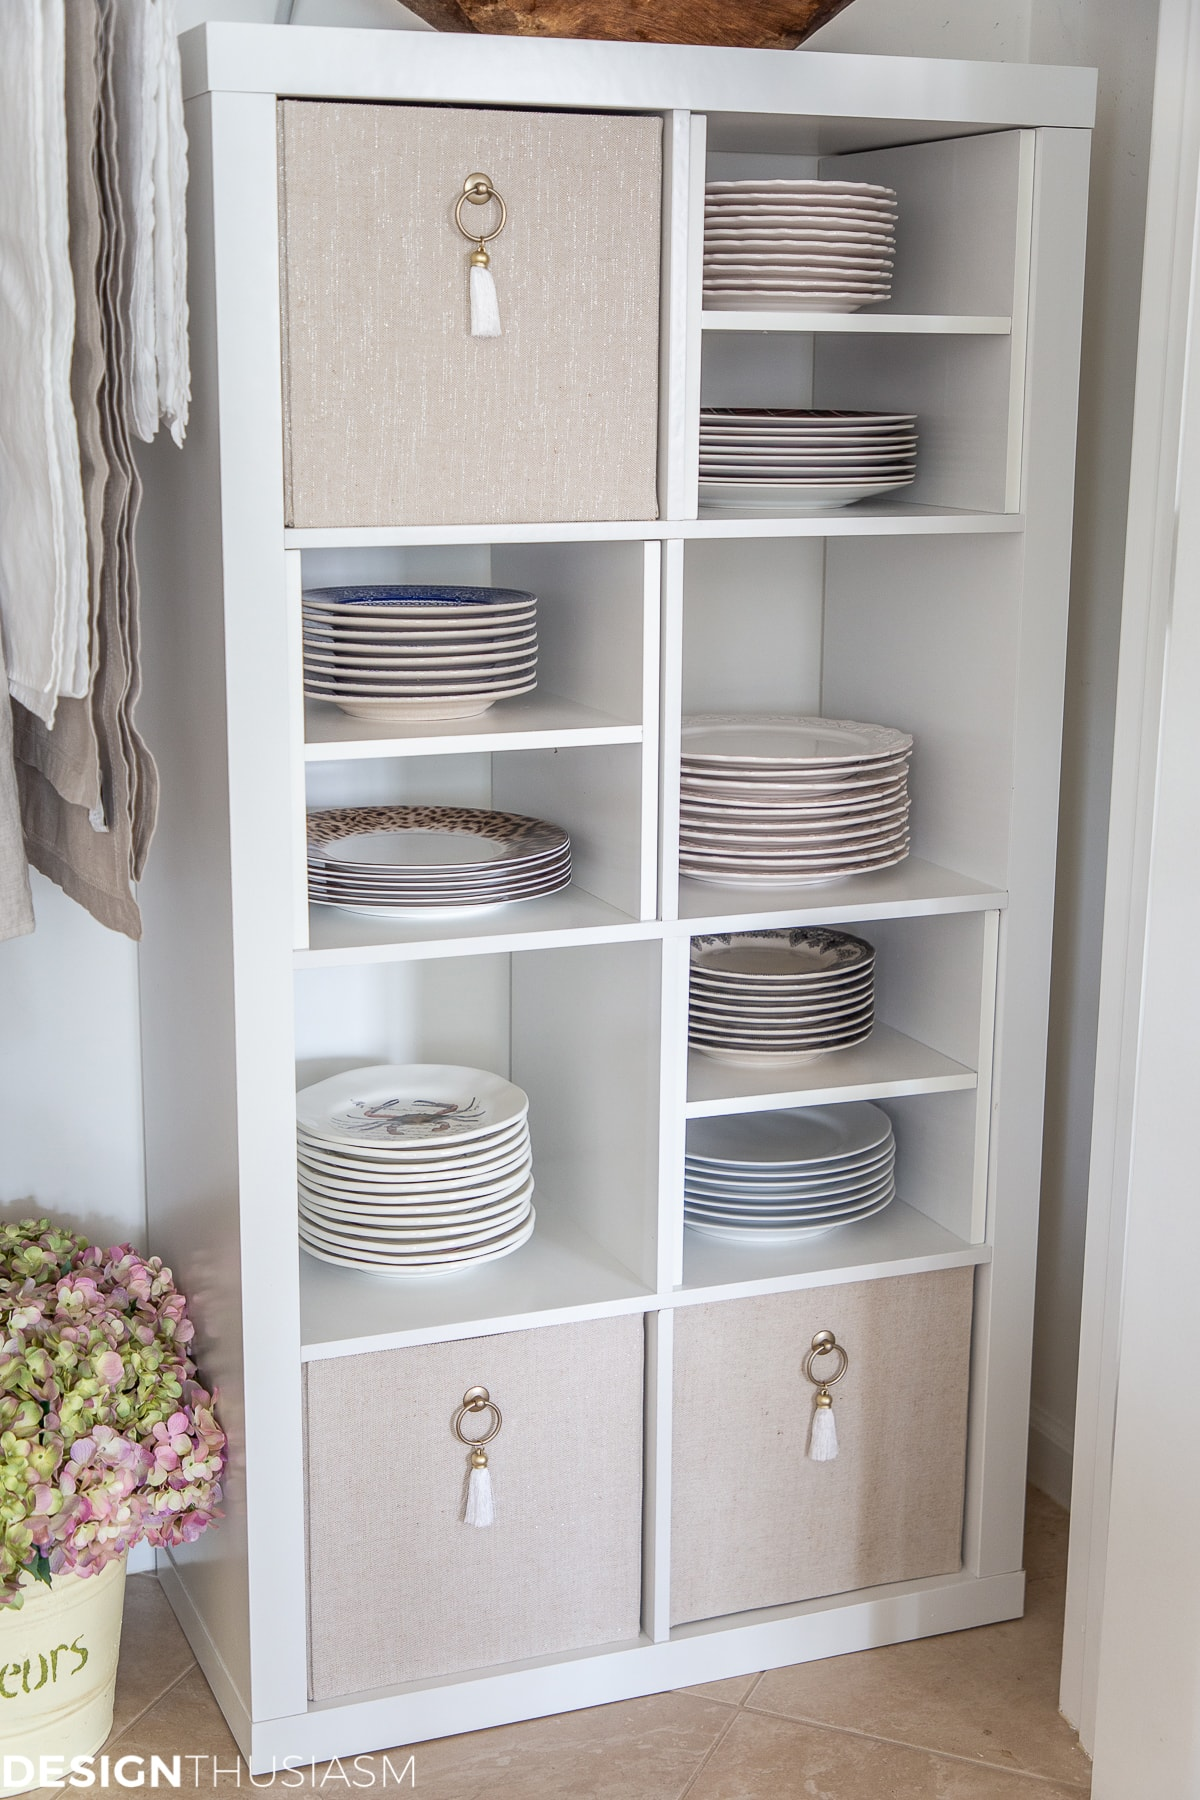 closet shelving unit for plate storage